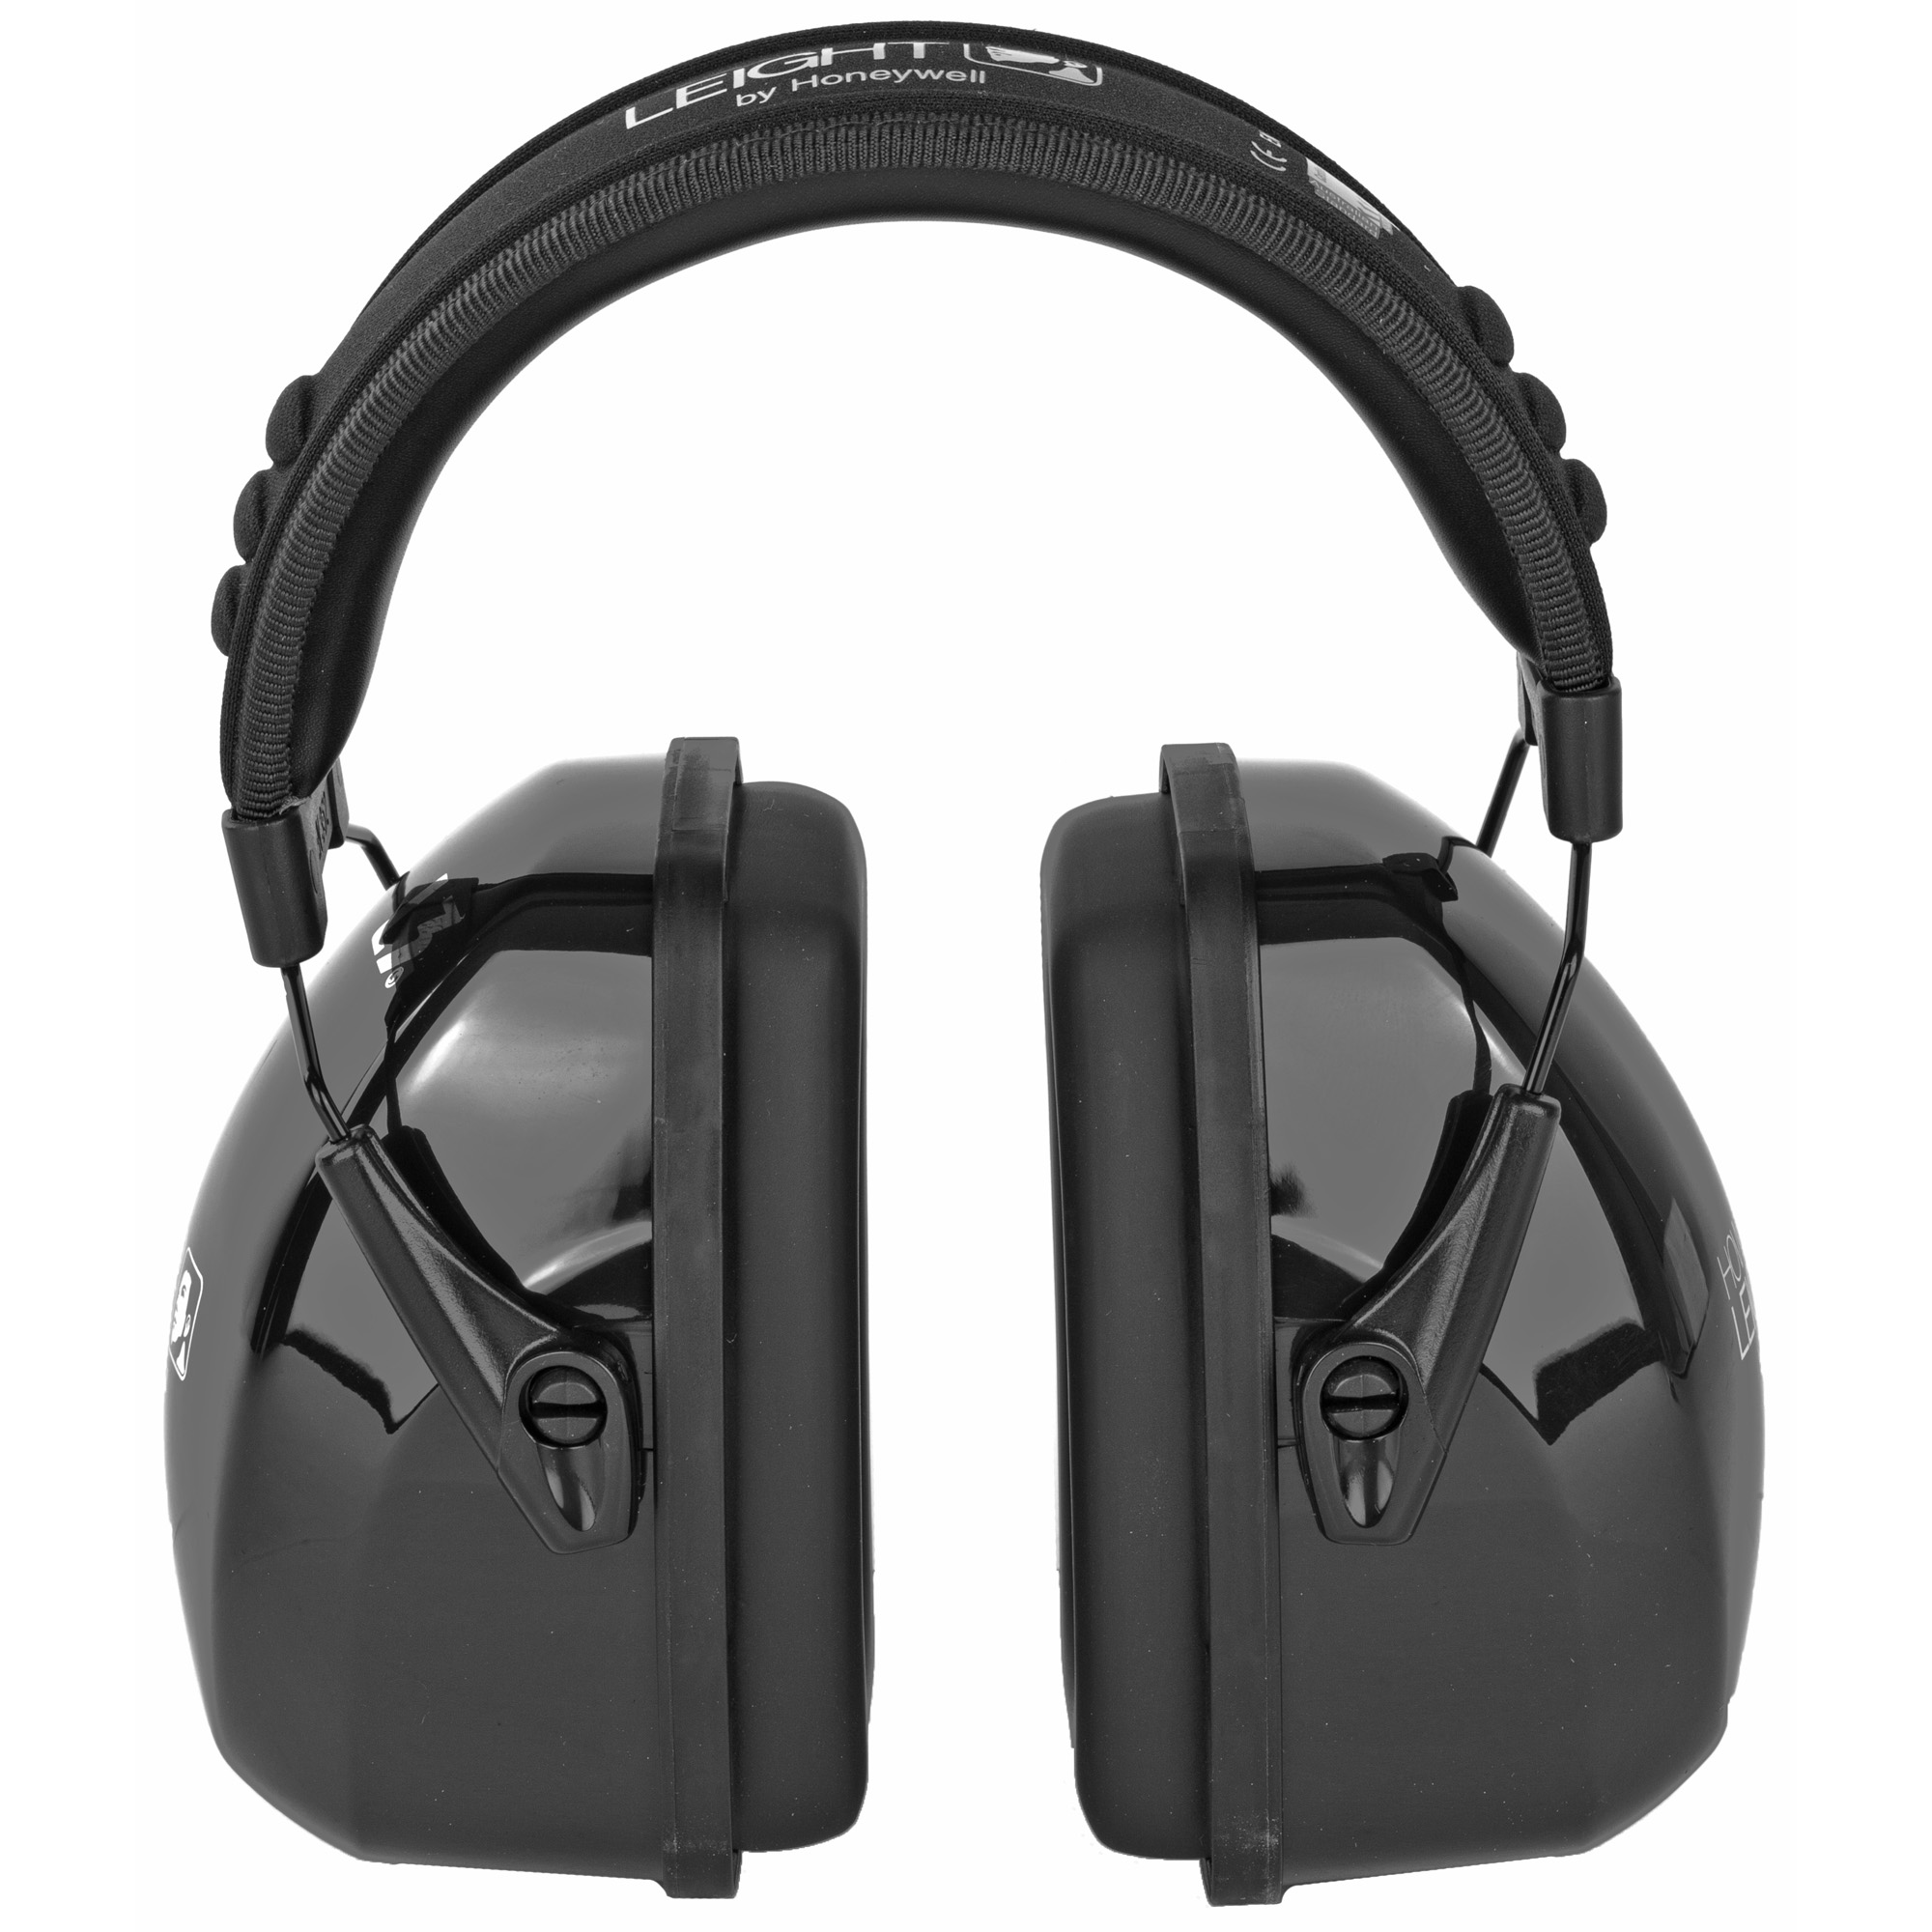 """The Leightning series steel-wire construction provides high performance and robust durability. These earmuffs stand up to daily use and abuse without compromising comfort. Howard Leight has optimized the Leightning series to deliver the highest level of comfort available"""" featuring an exclusive padded foam headband and super-soft ear cushions that eliminate that """"squeezing"""" pressure on the head. The Leightning series also features Bilsom Technology's patented Air Flow Control technology for optimal attenuation across all frequencies and snap-in ear cushions for easy maintenance."""